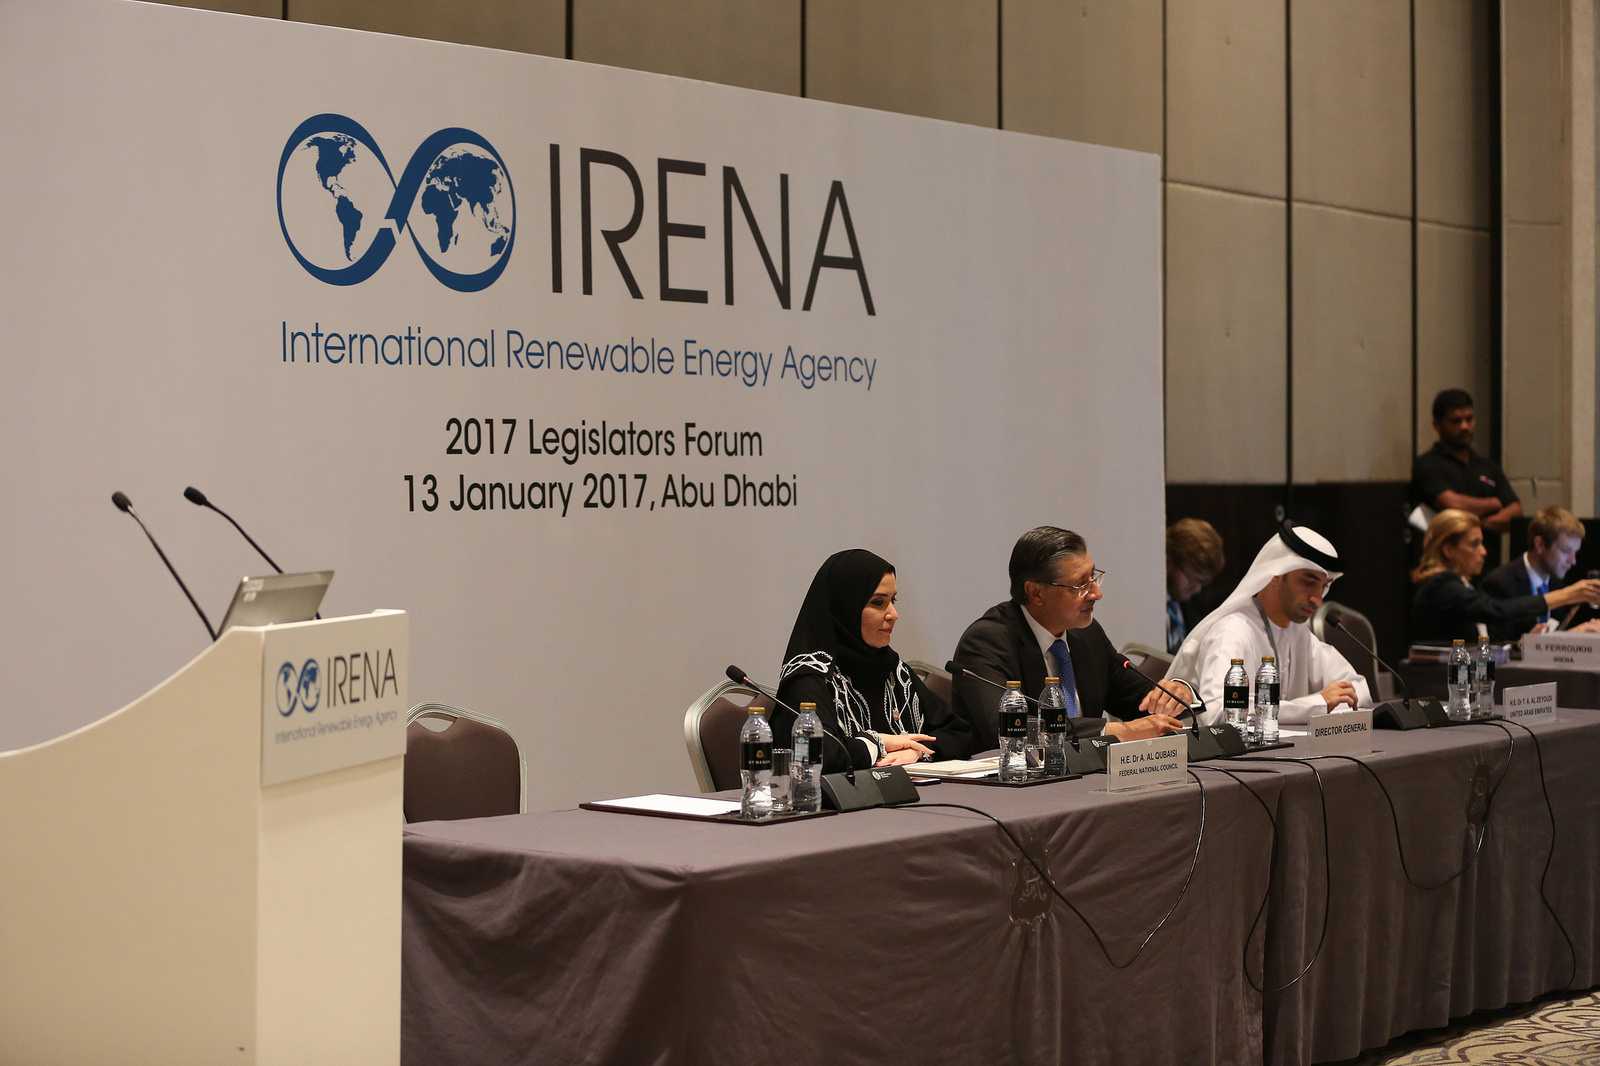 irena assembly solar microgrids